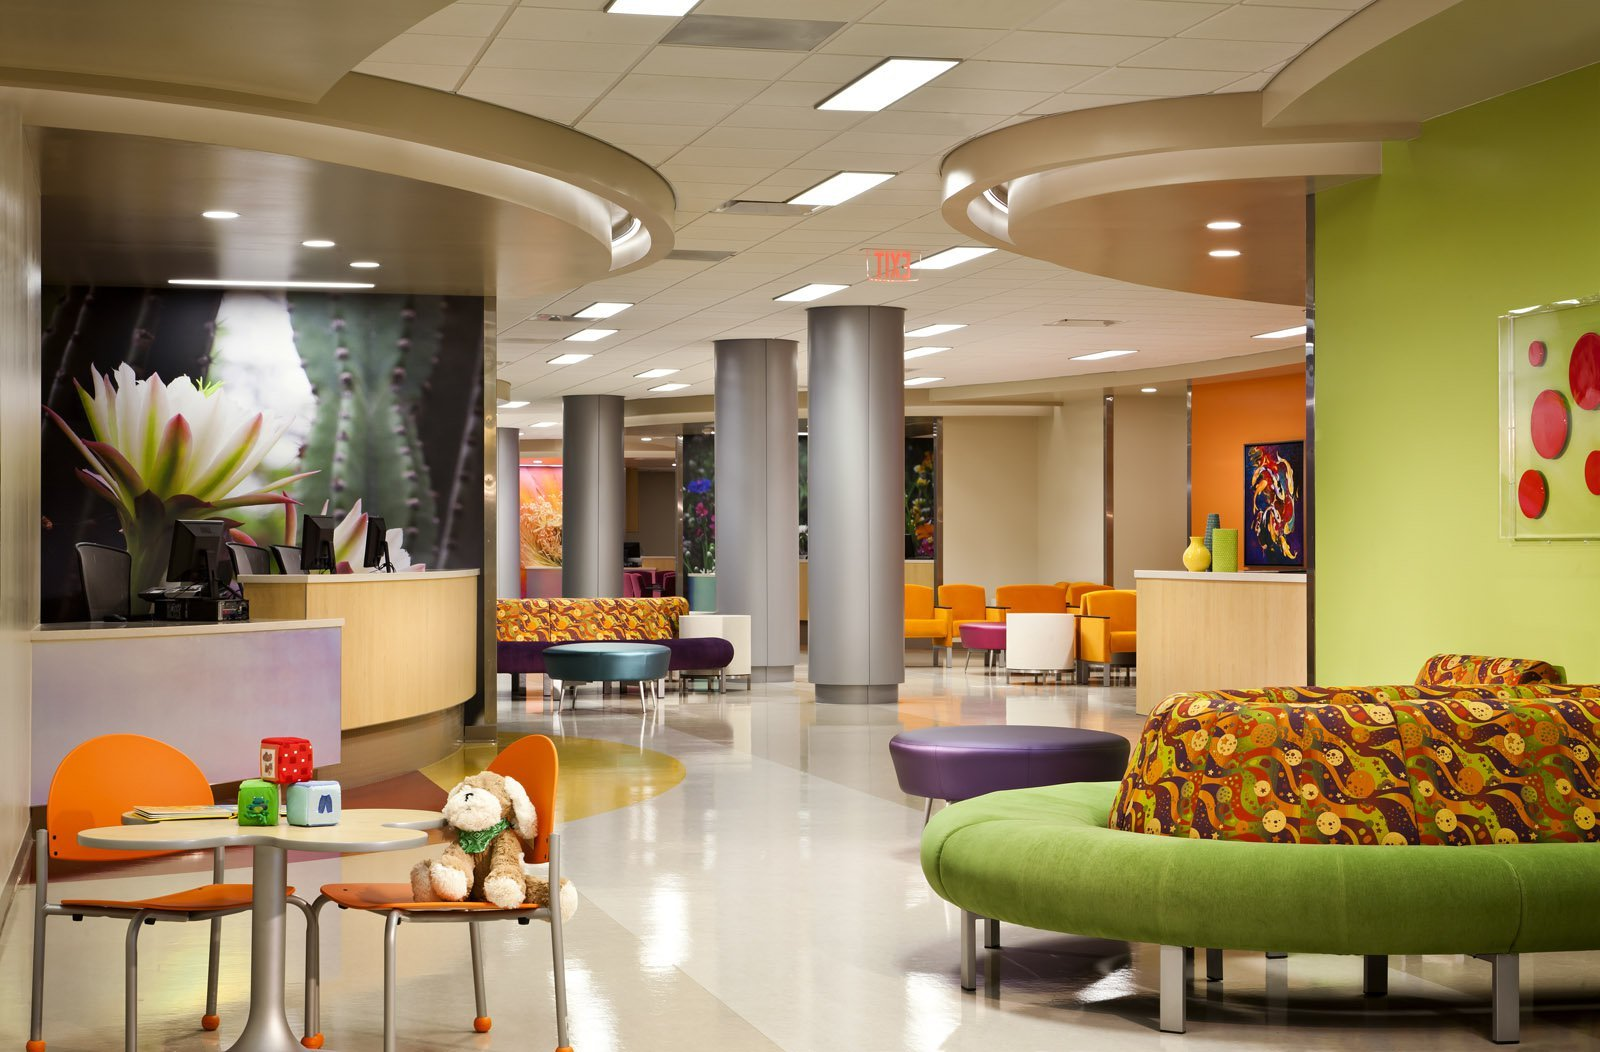 Gallery of Phoenix Children's Hospital / HKS Architects - 22